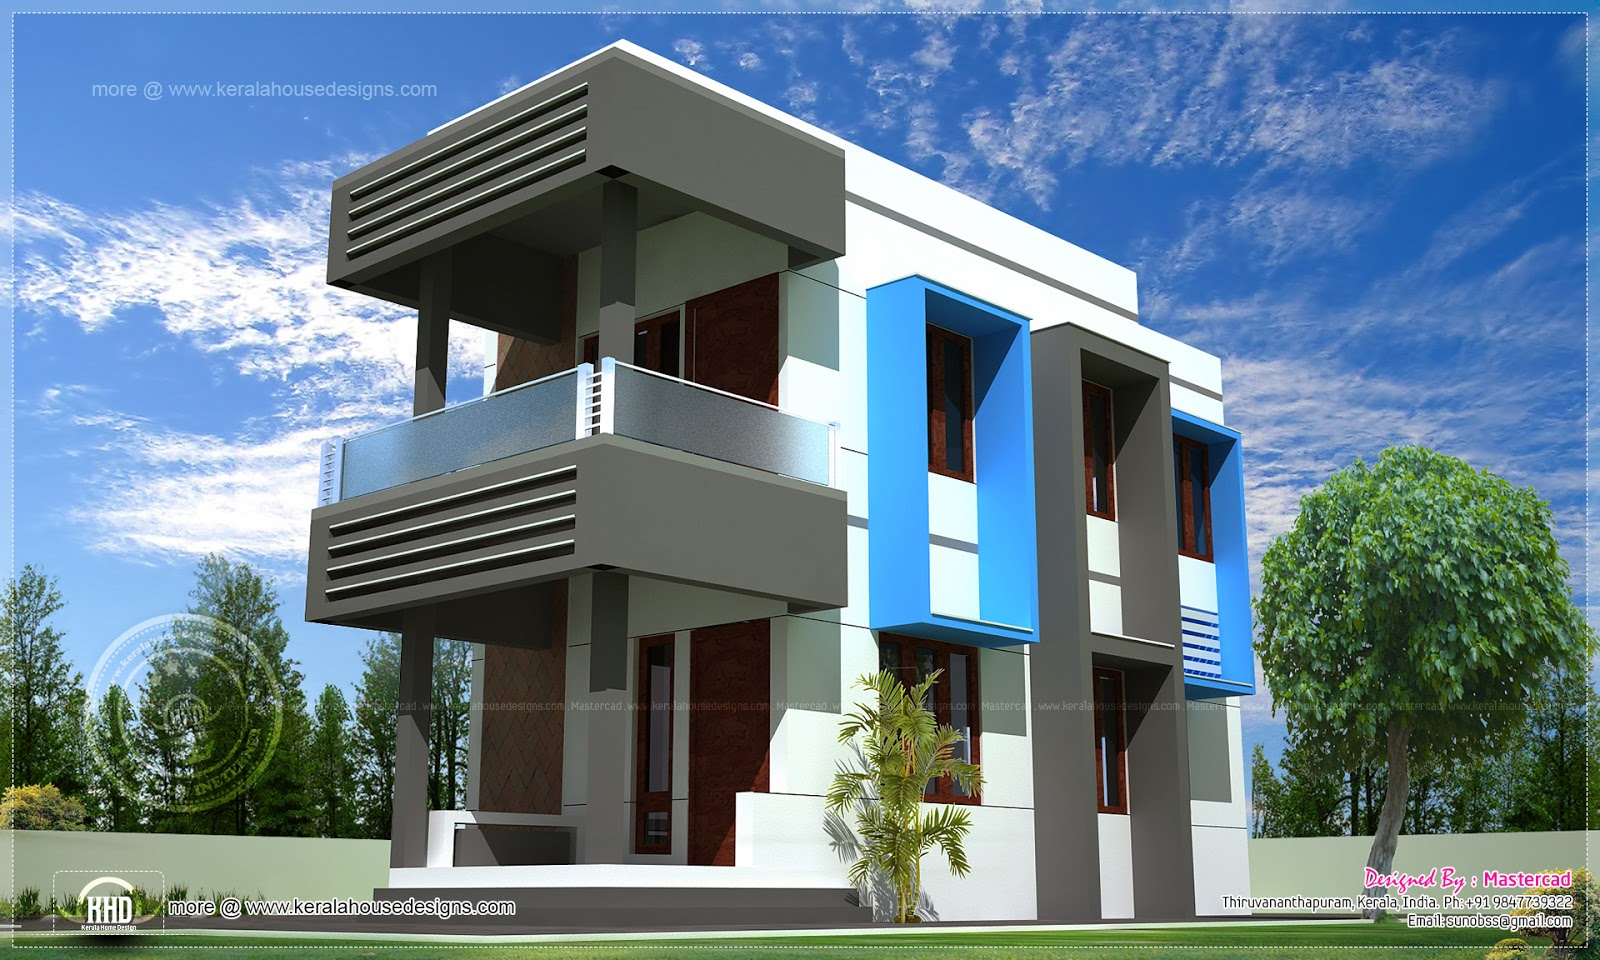 Compact House Design contemporary compact villa design | house design plans